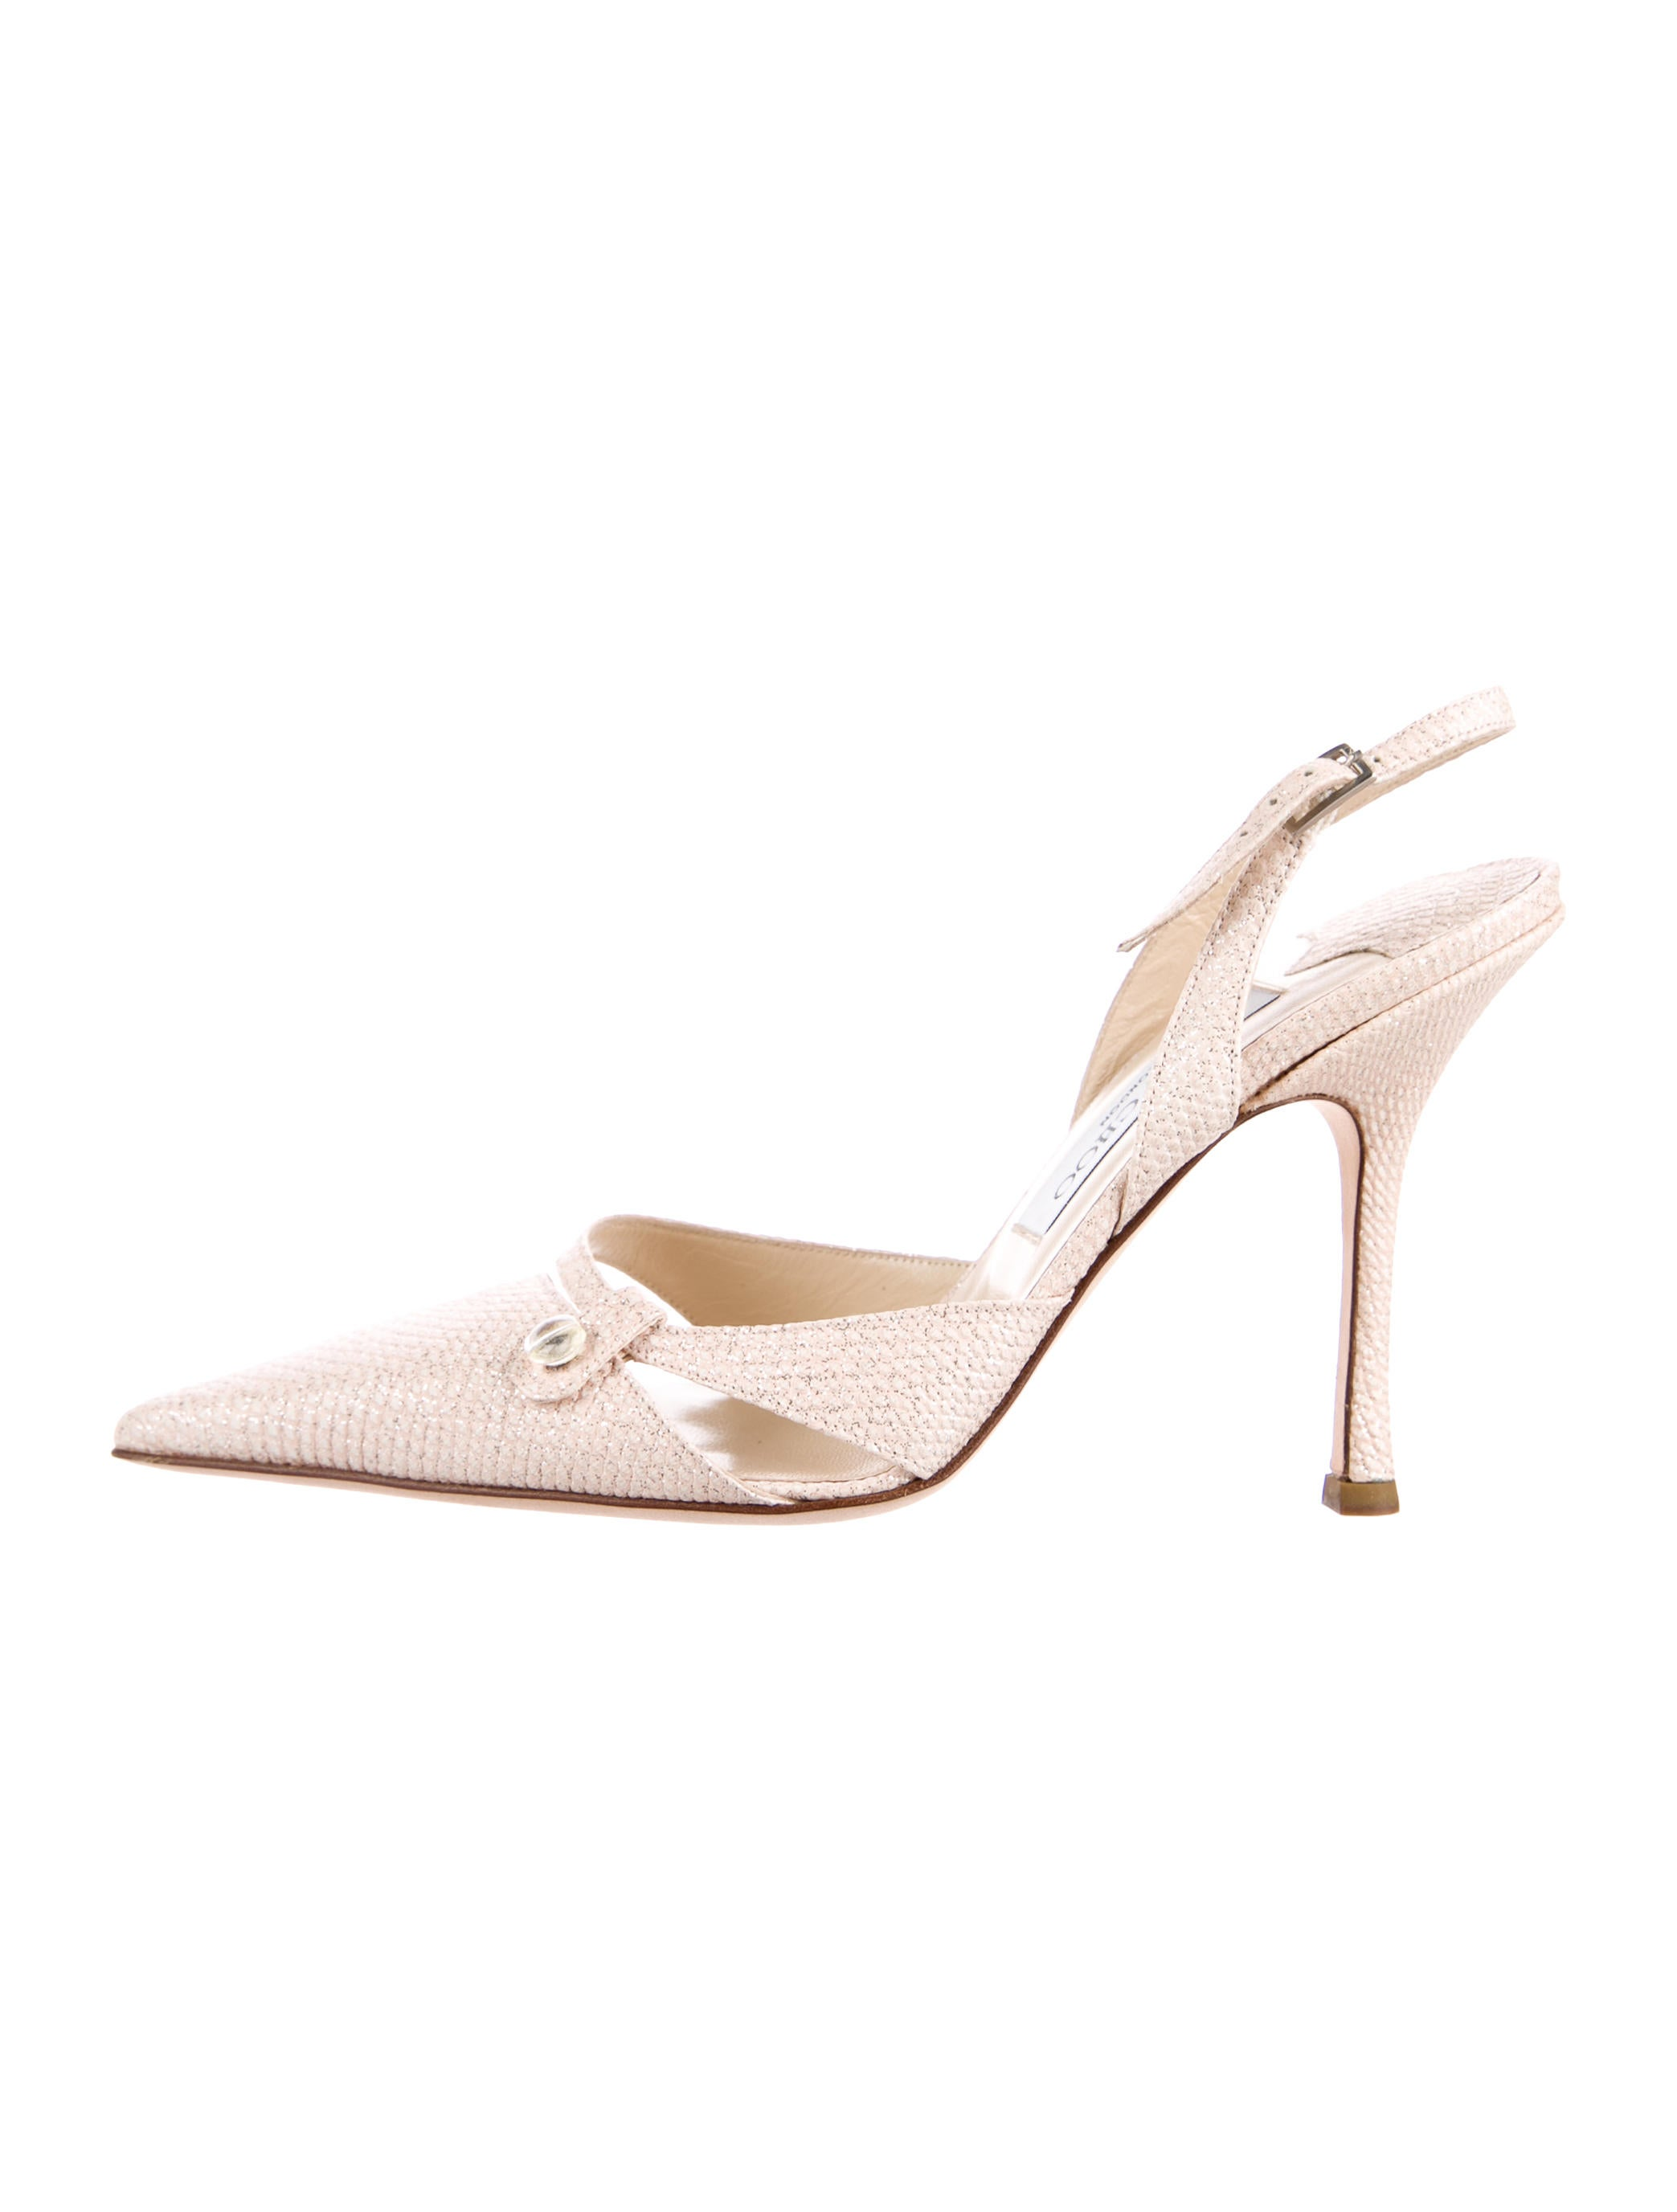 Jimmy Choo Pointed-Toe Karung Pumps clearance eastbay collections fd78bI9HC